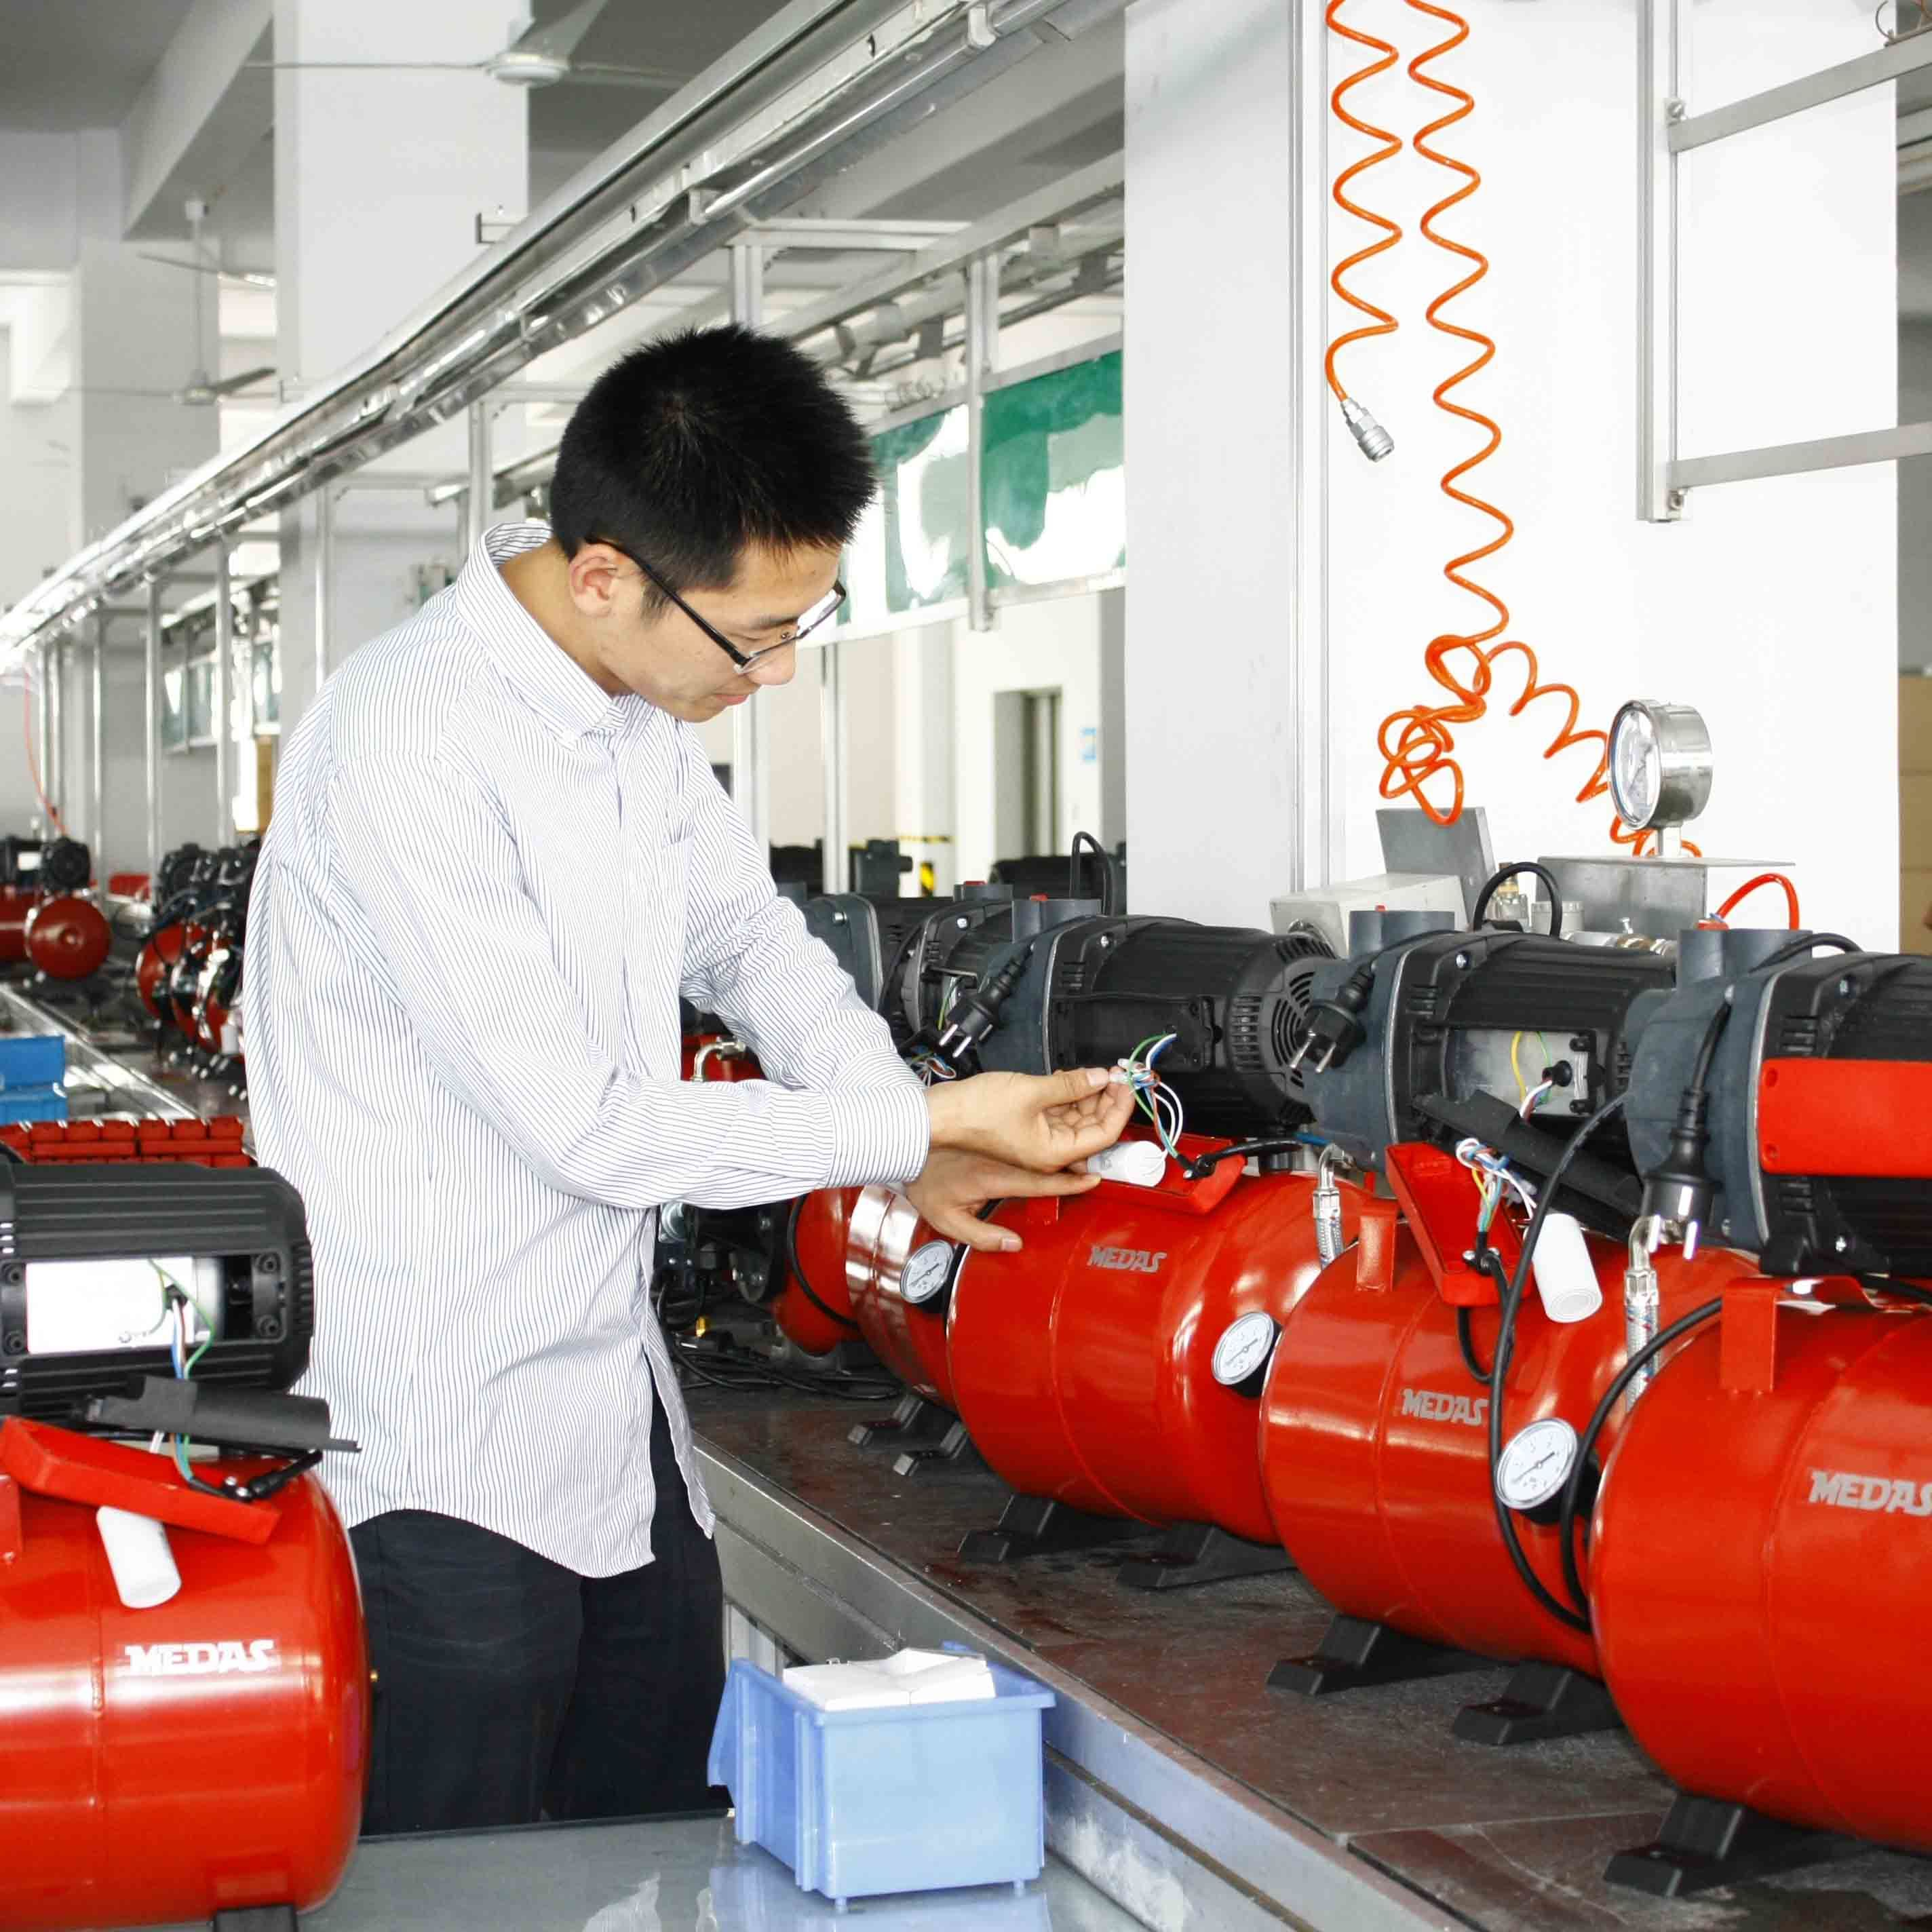 Automatic, Multistage Casting Iron Pump Multi Ms 33t